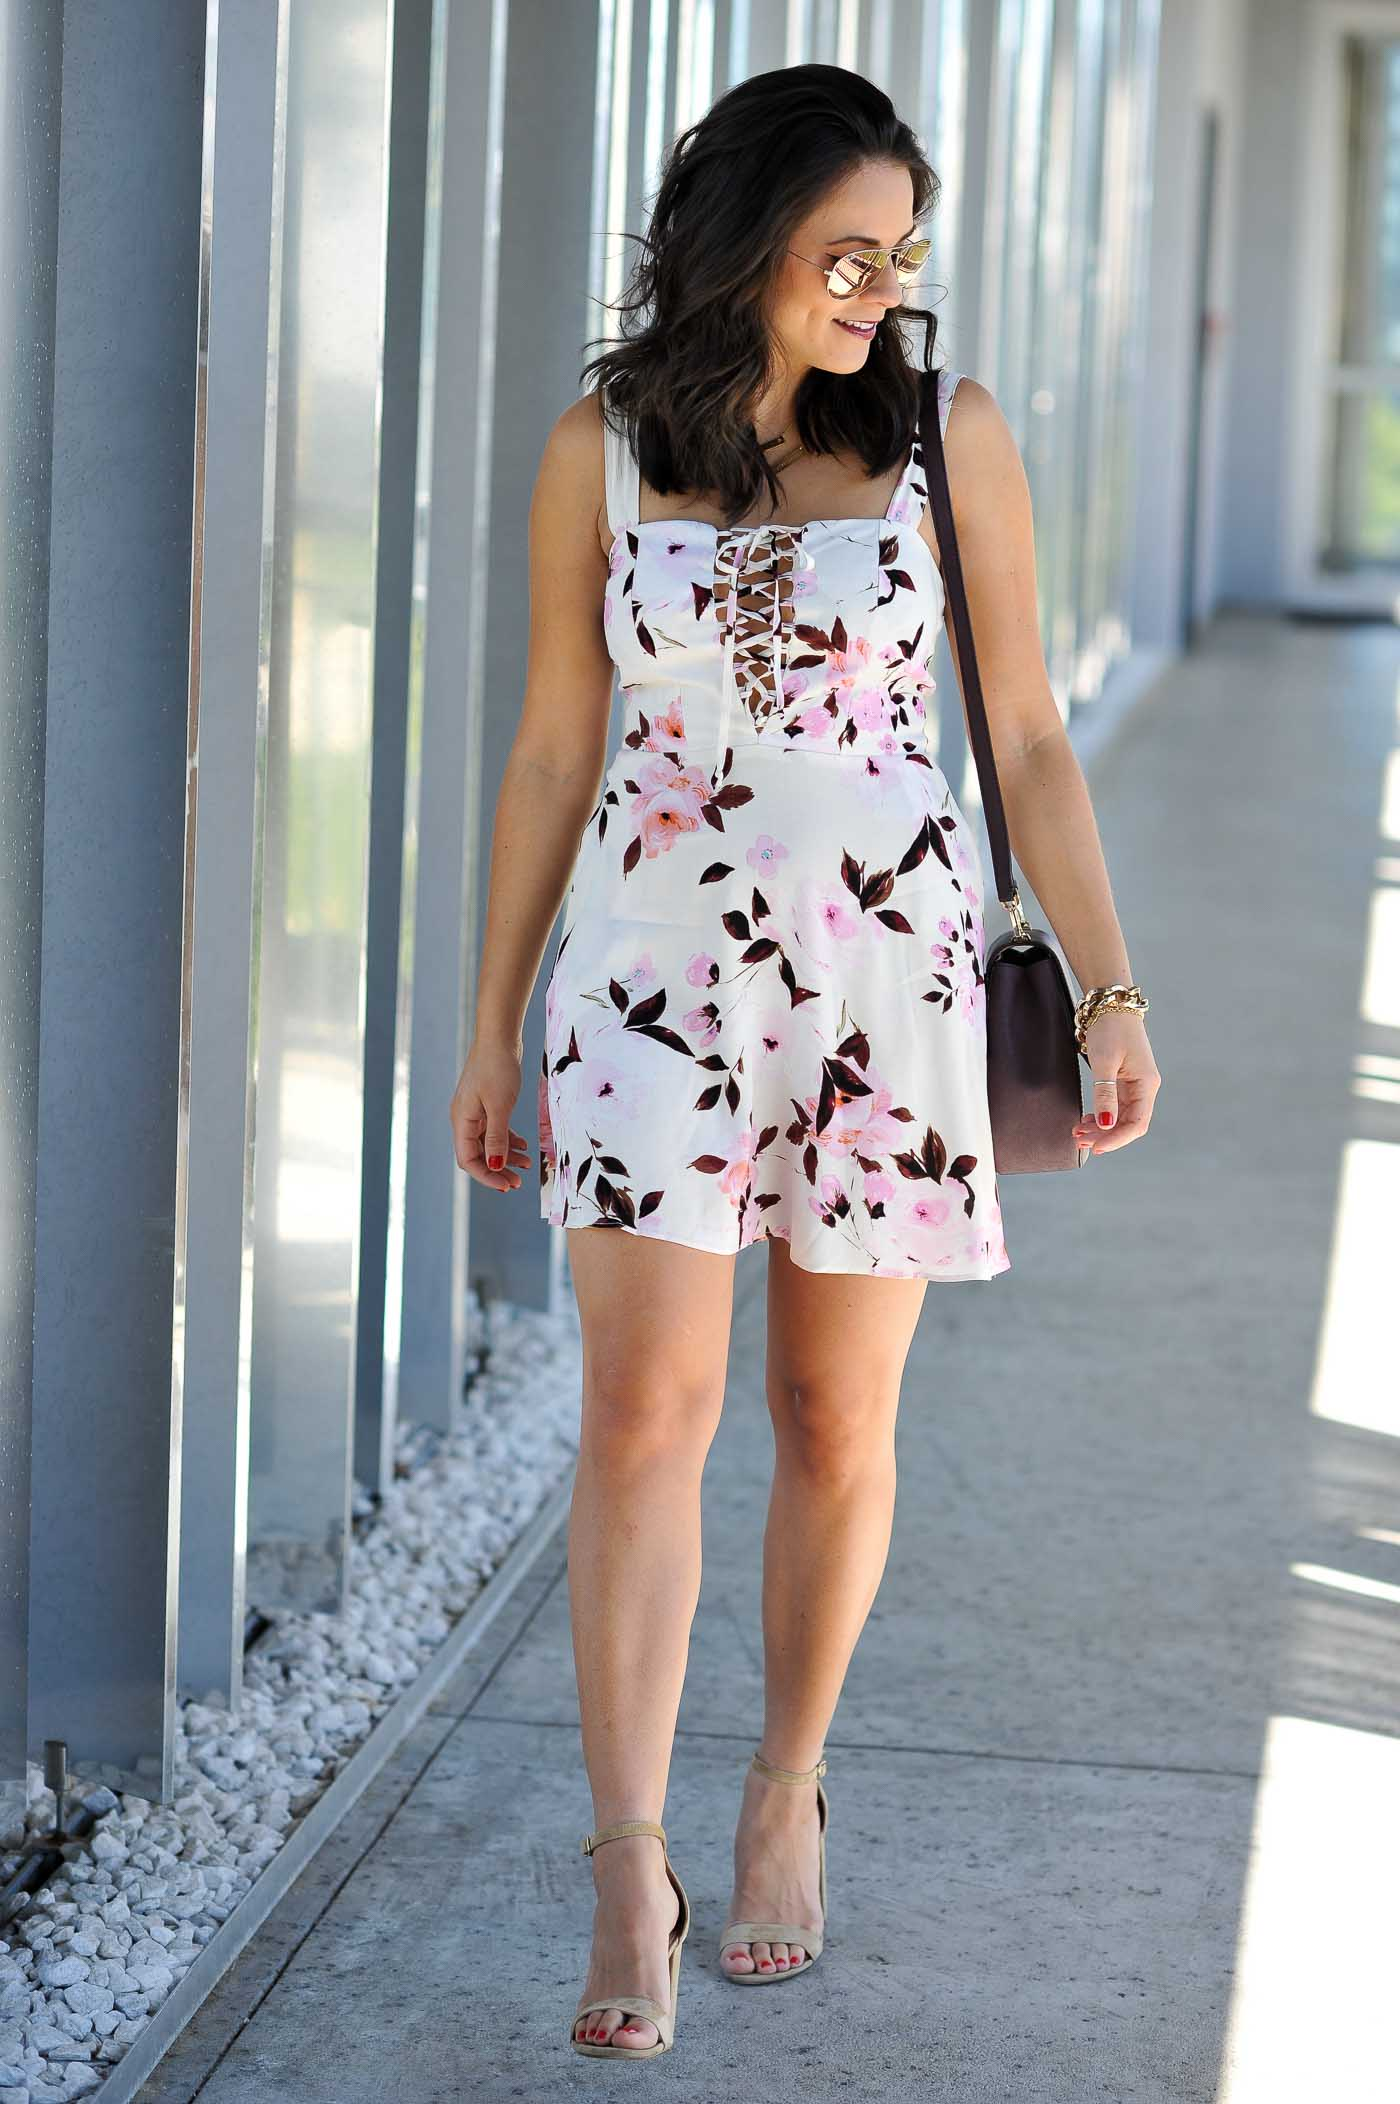 affordable floral dresses for summer - My Style Vita @mystylevita